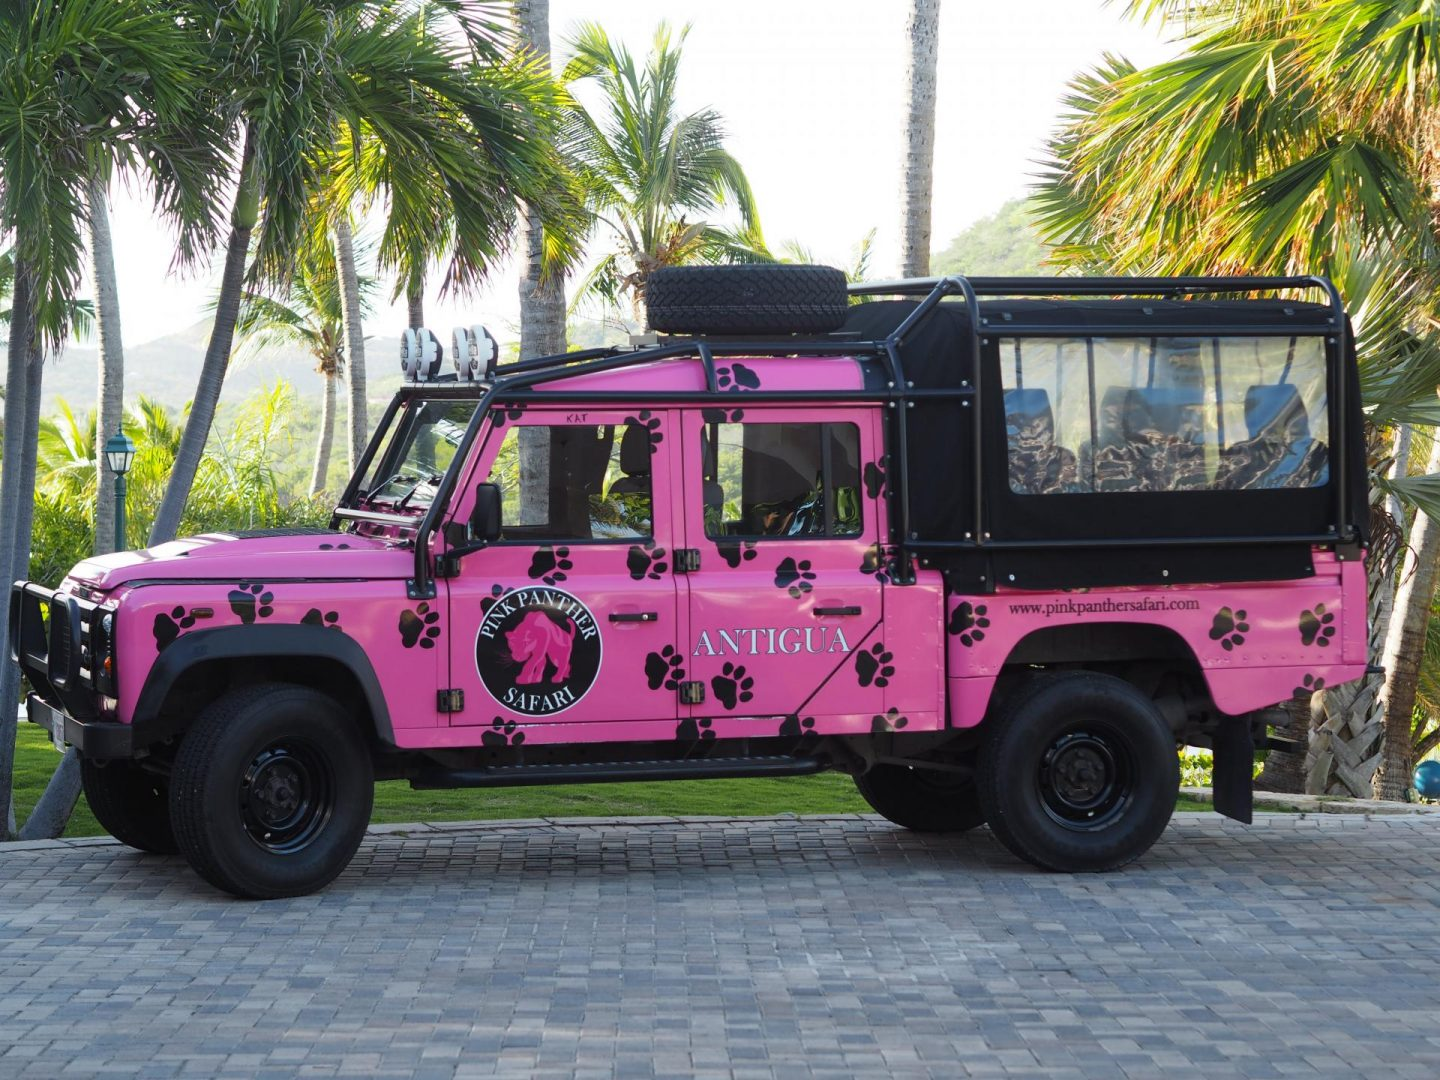 Pink Panther Safari while in Antigua